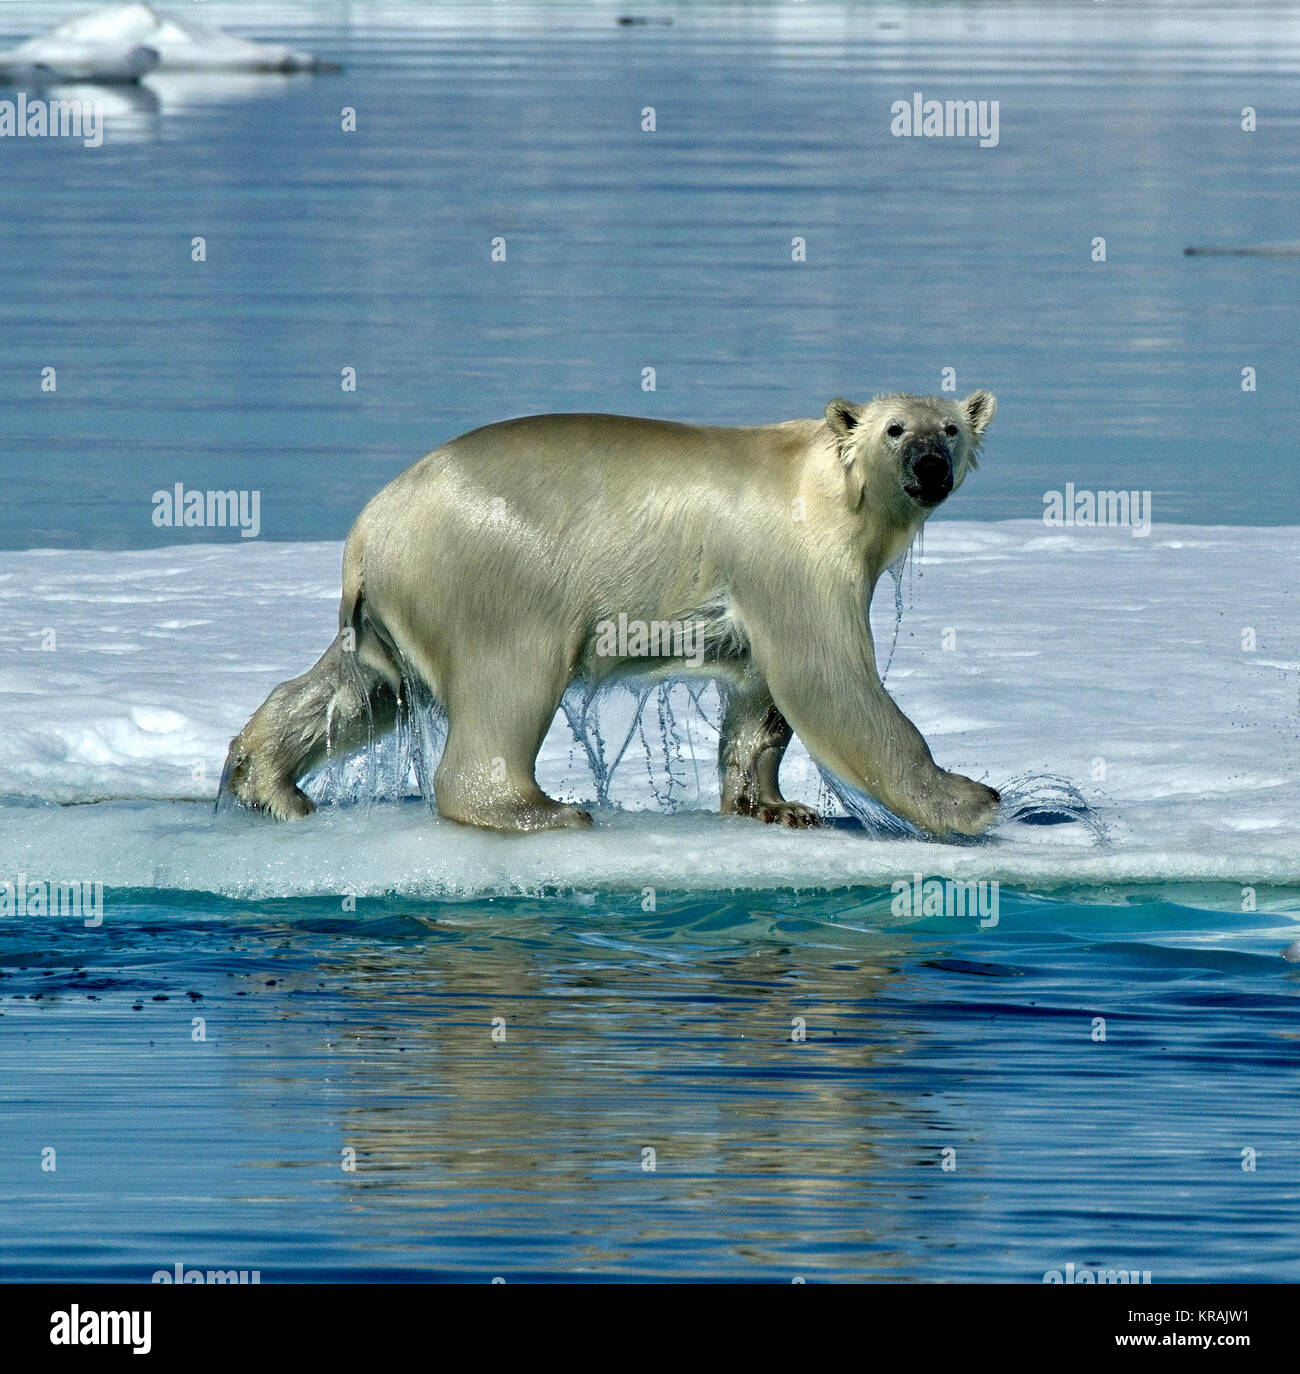 Polar Bear walking on floating ice, Scoresby Sound, Greenland, summer 2017.  The Polar Bear is dripping a lot of - Stock Image